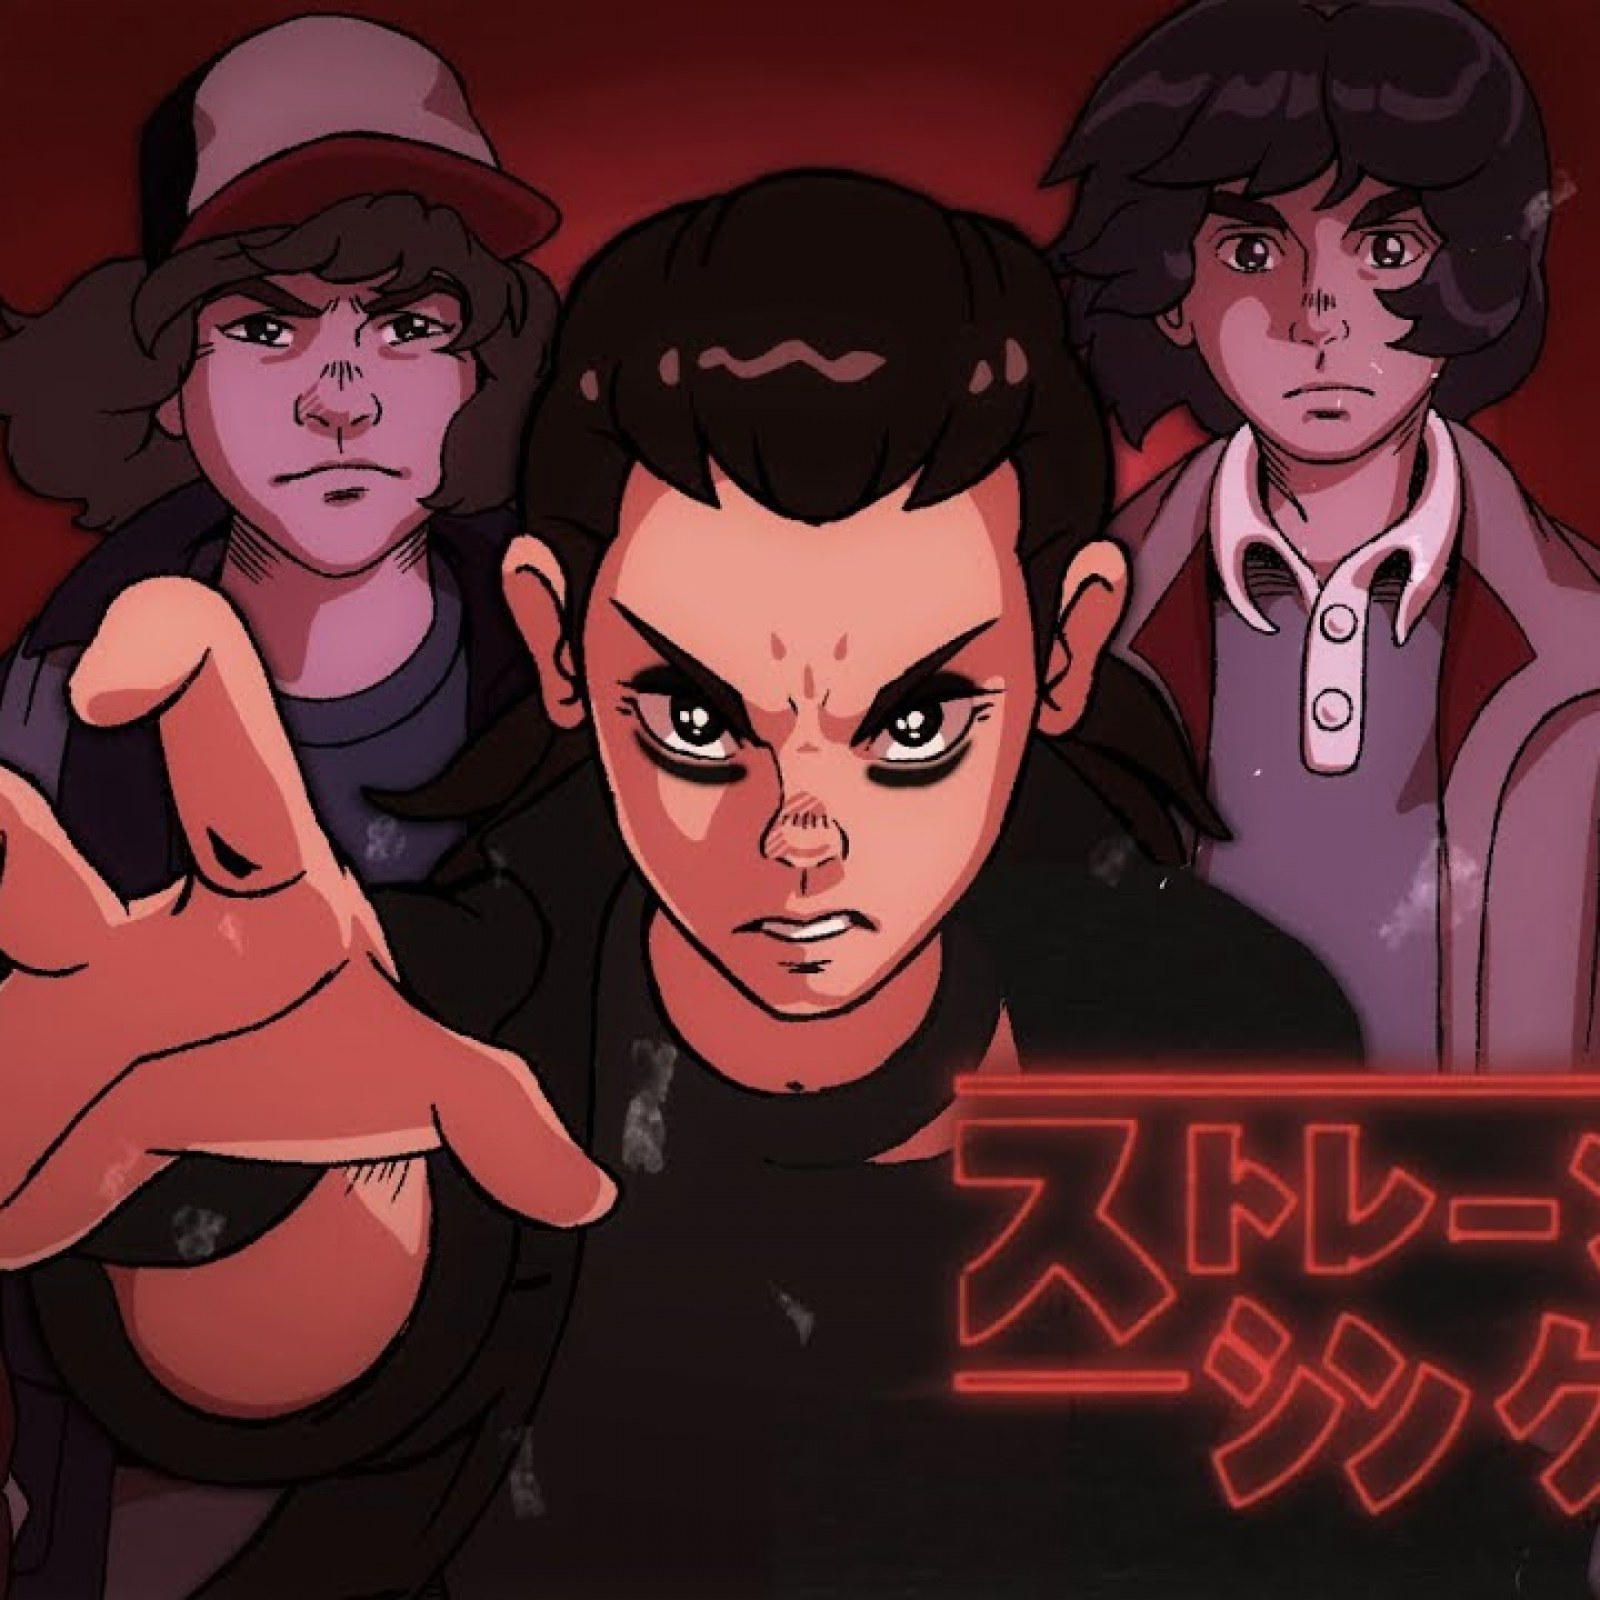 Stranger Things' Anime Influence Is More Than Just A Viral Short